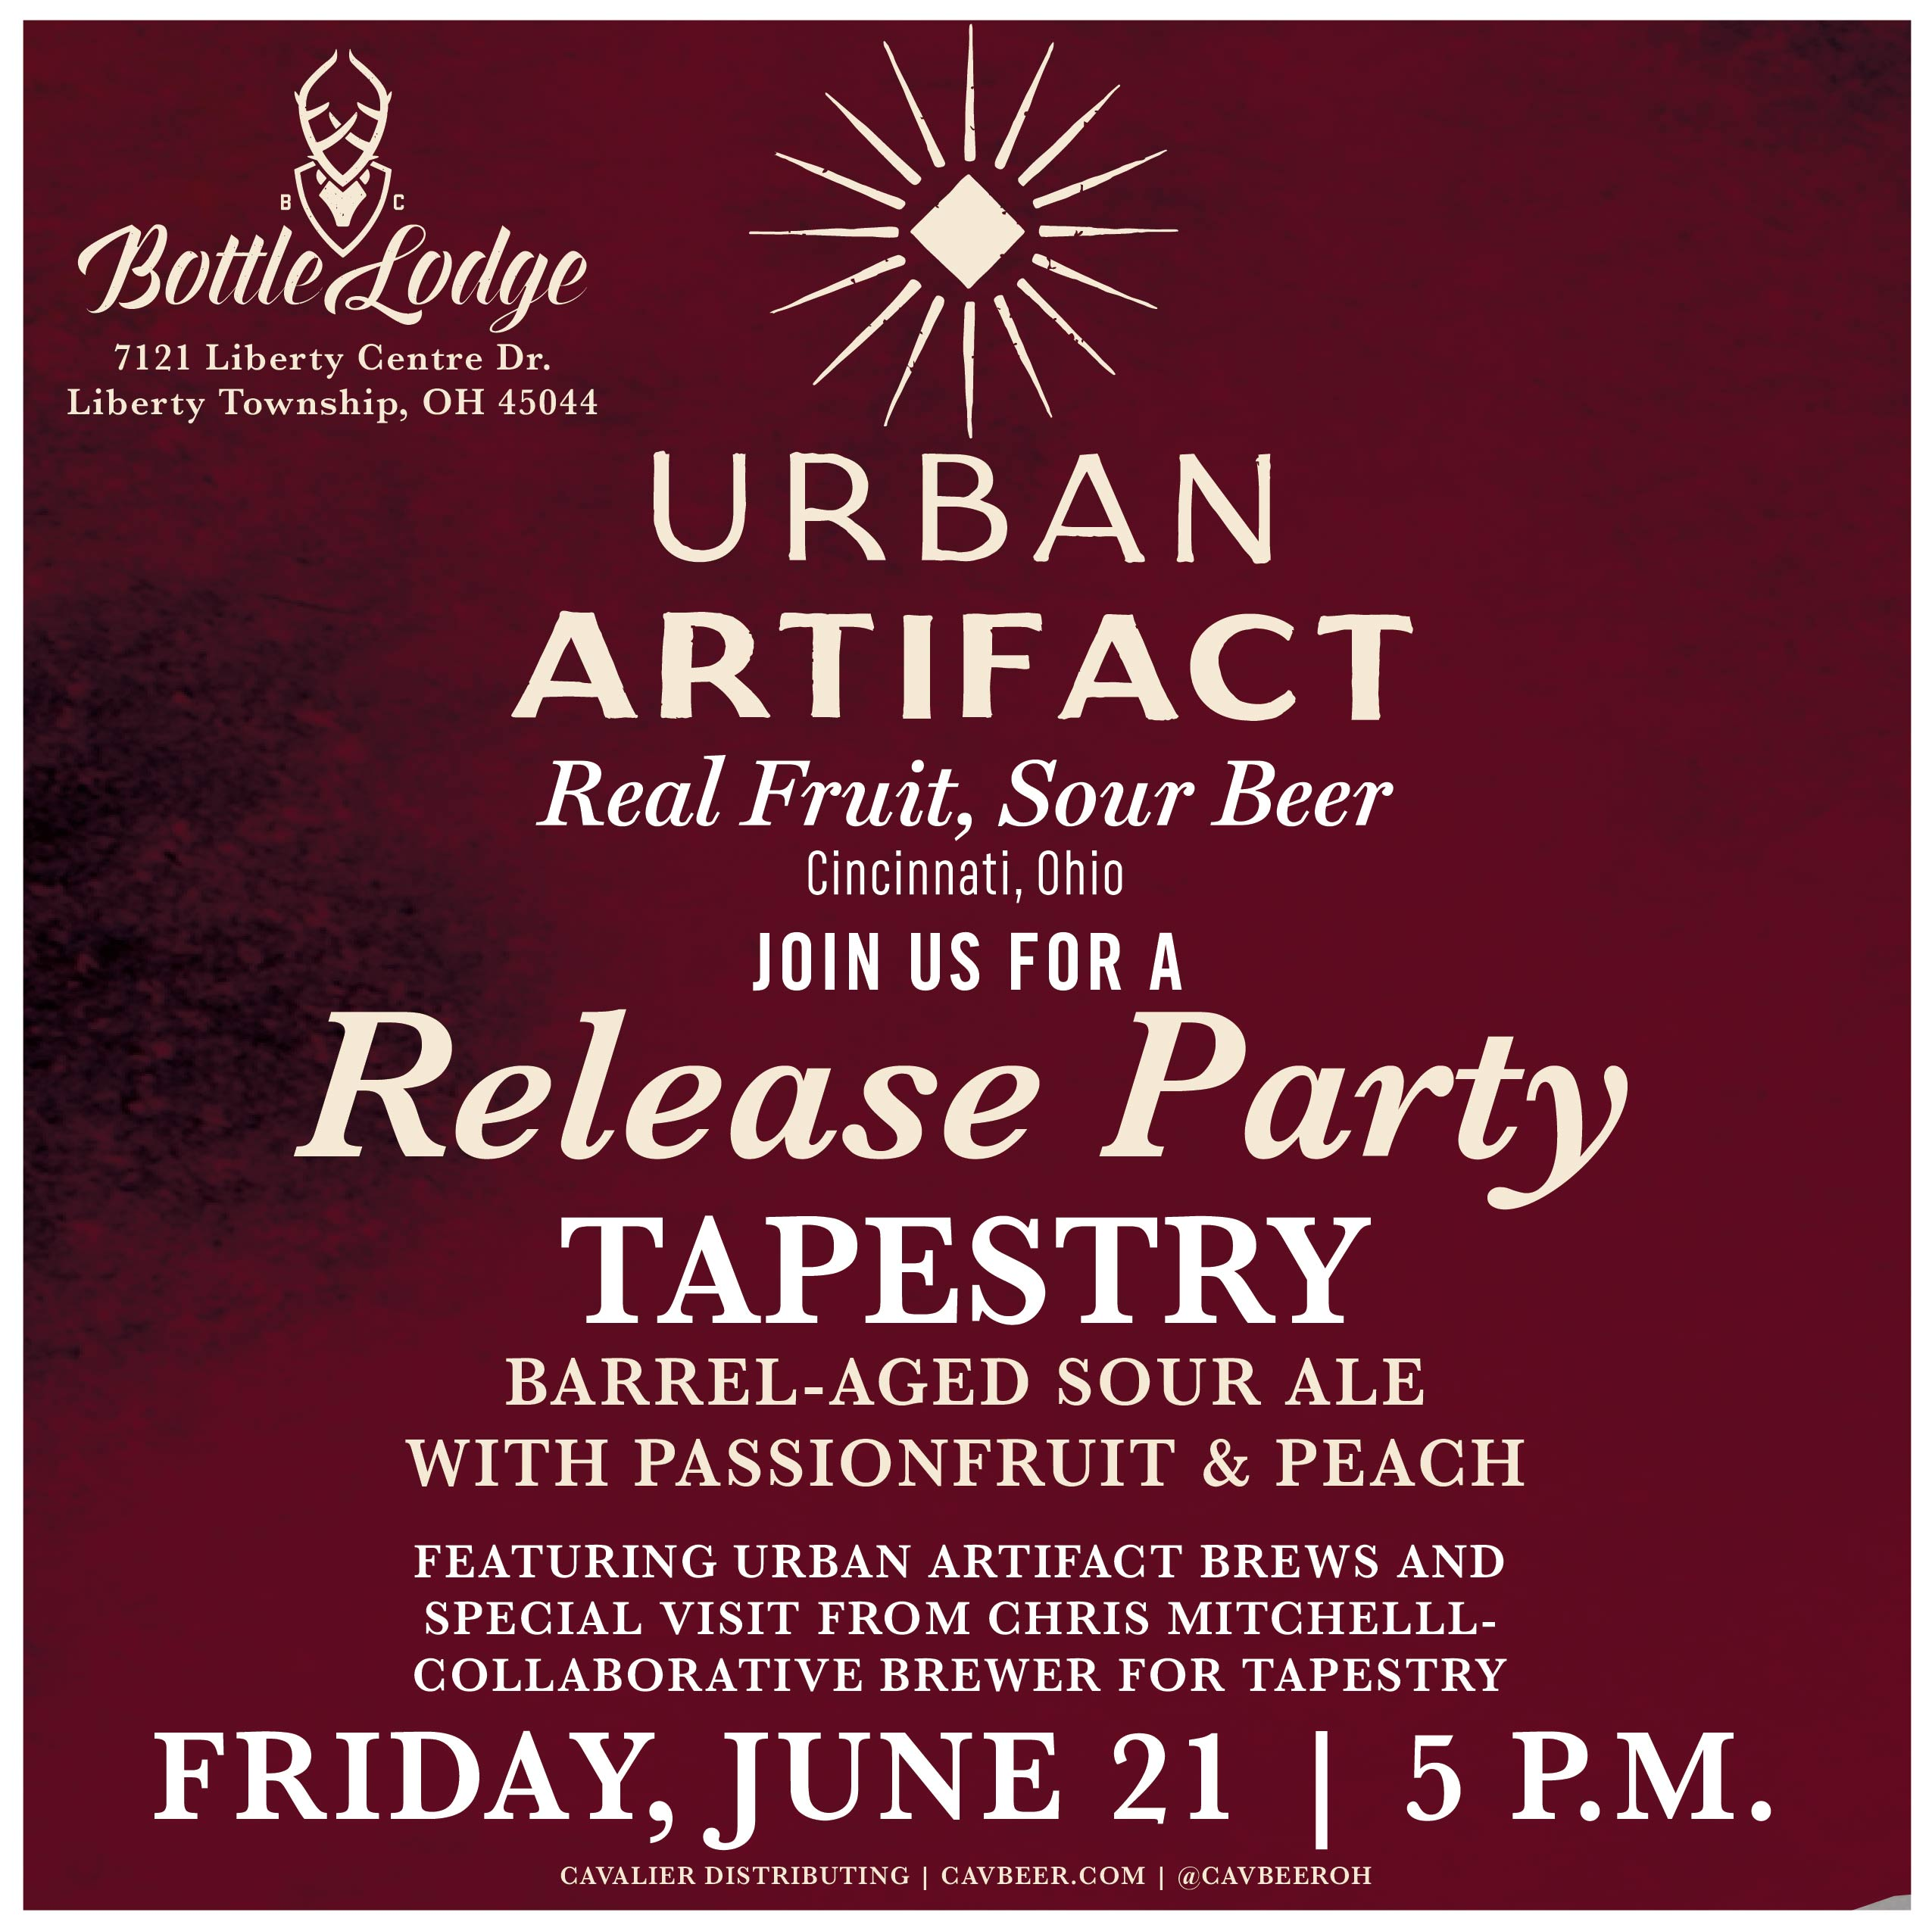 Urban Artifact Release Party @ BC's Bottle Lodge